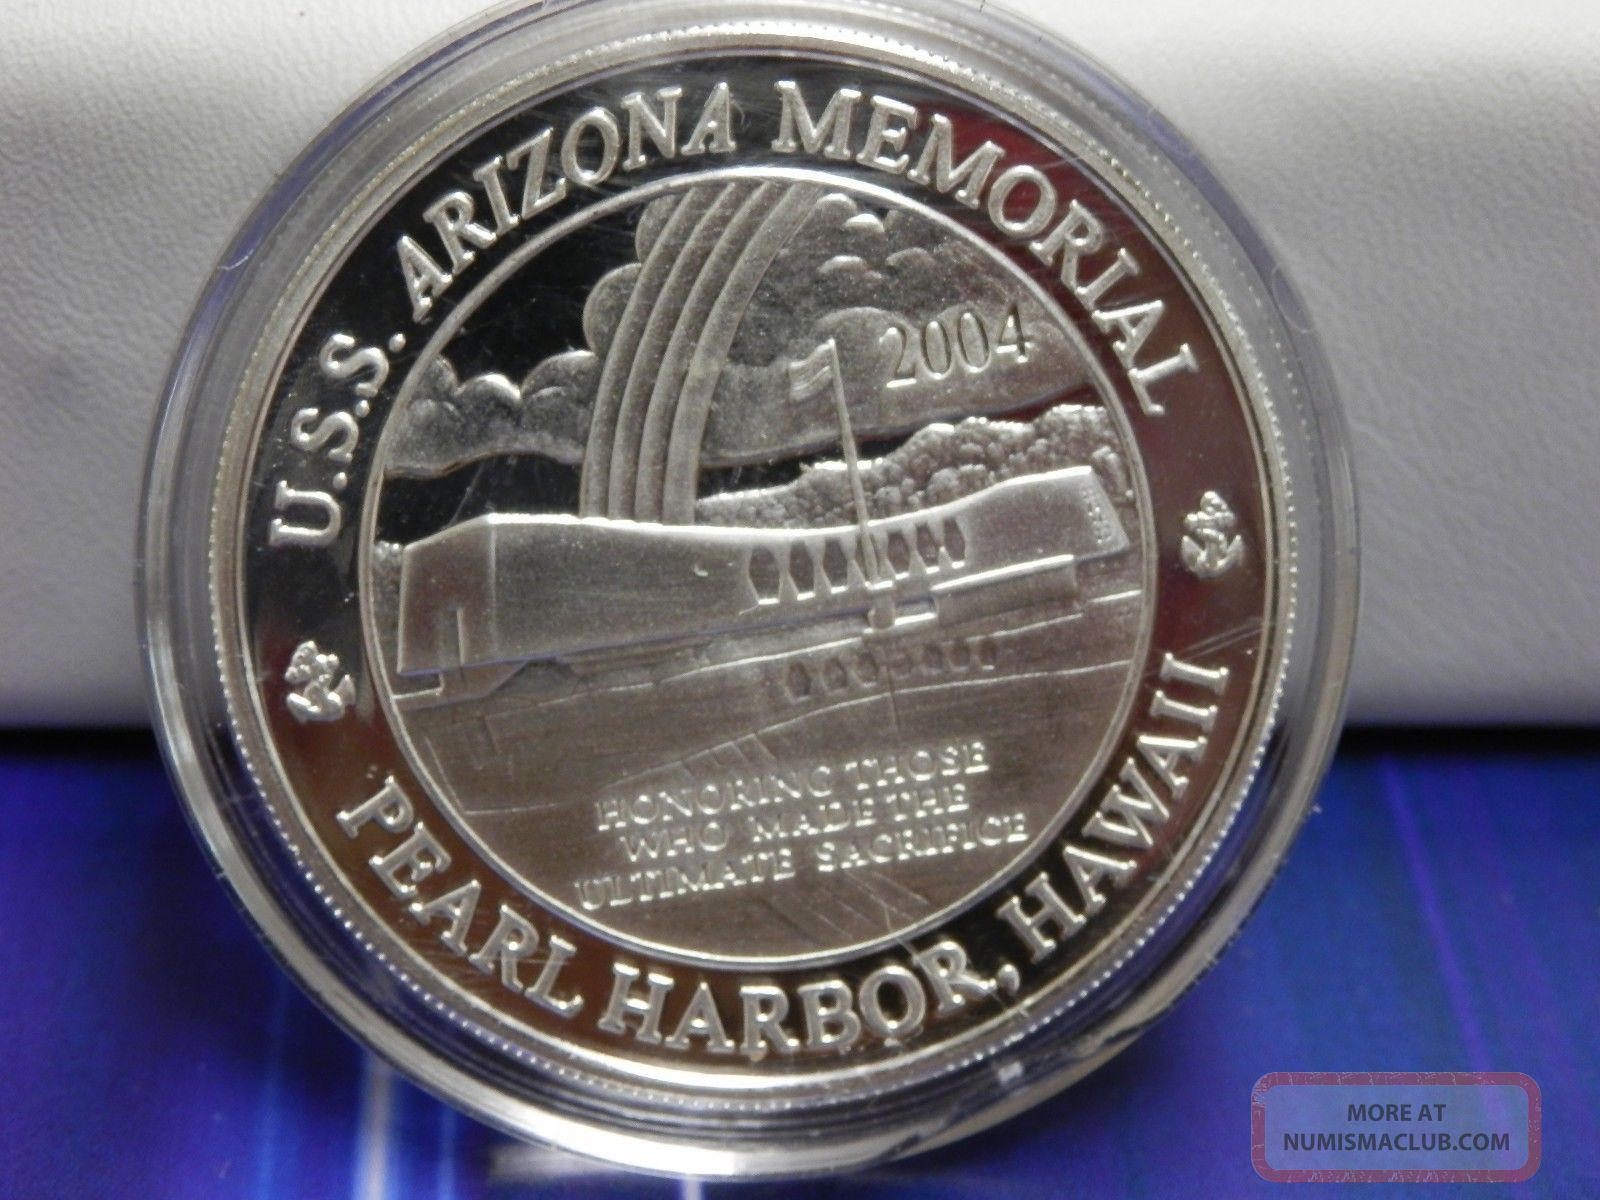 2004 Pearl Harbor Uss Arizona Memorial Coin 1 Oz Fine